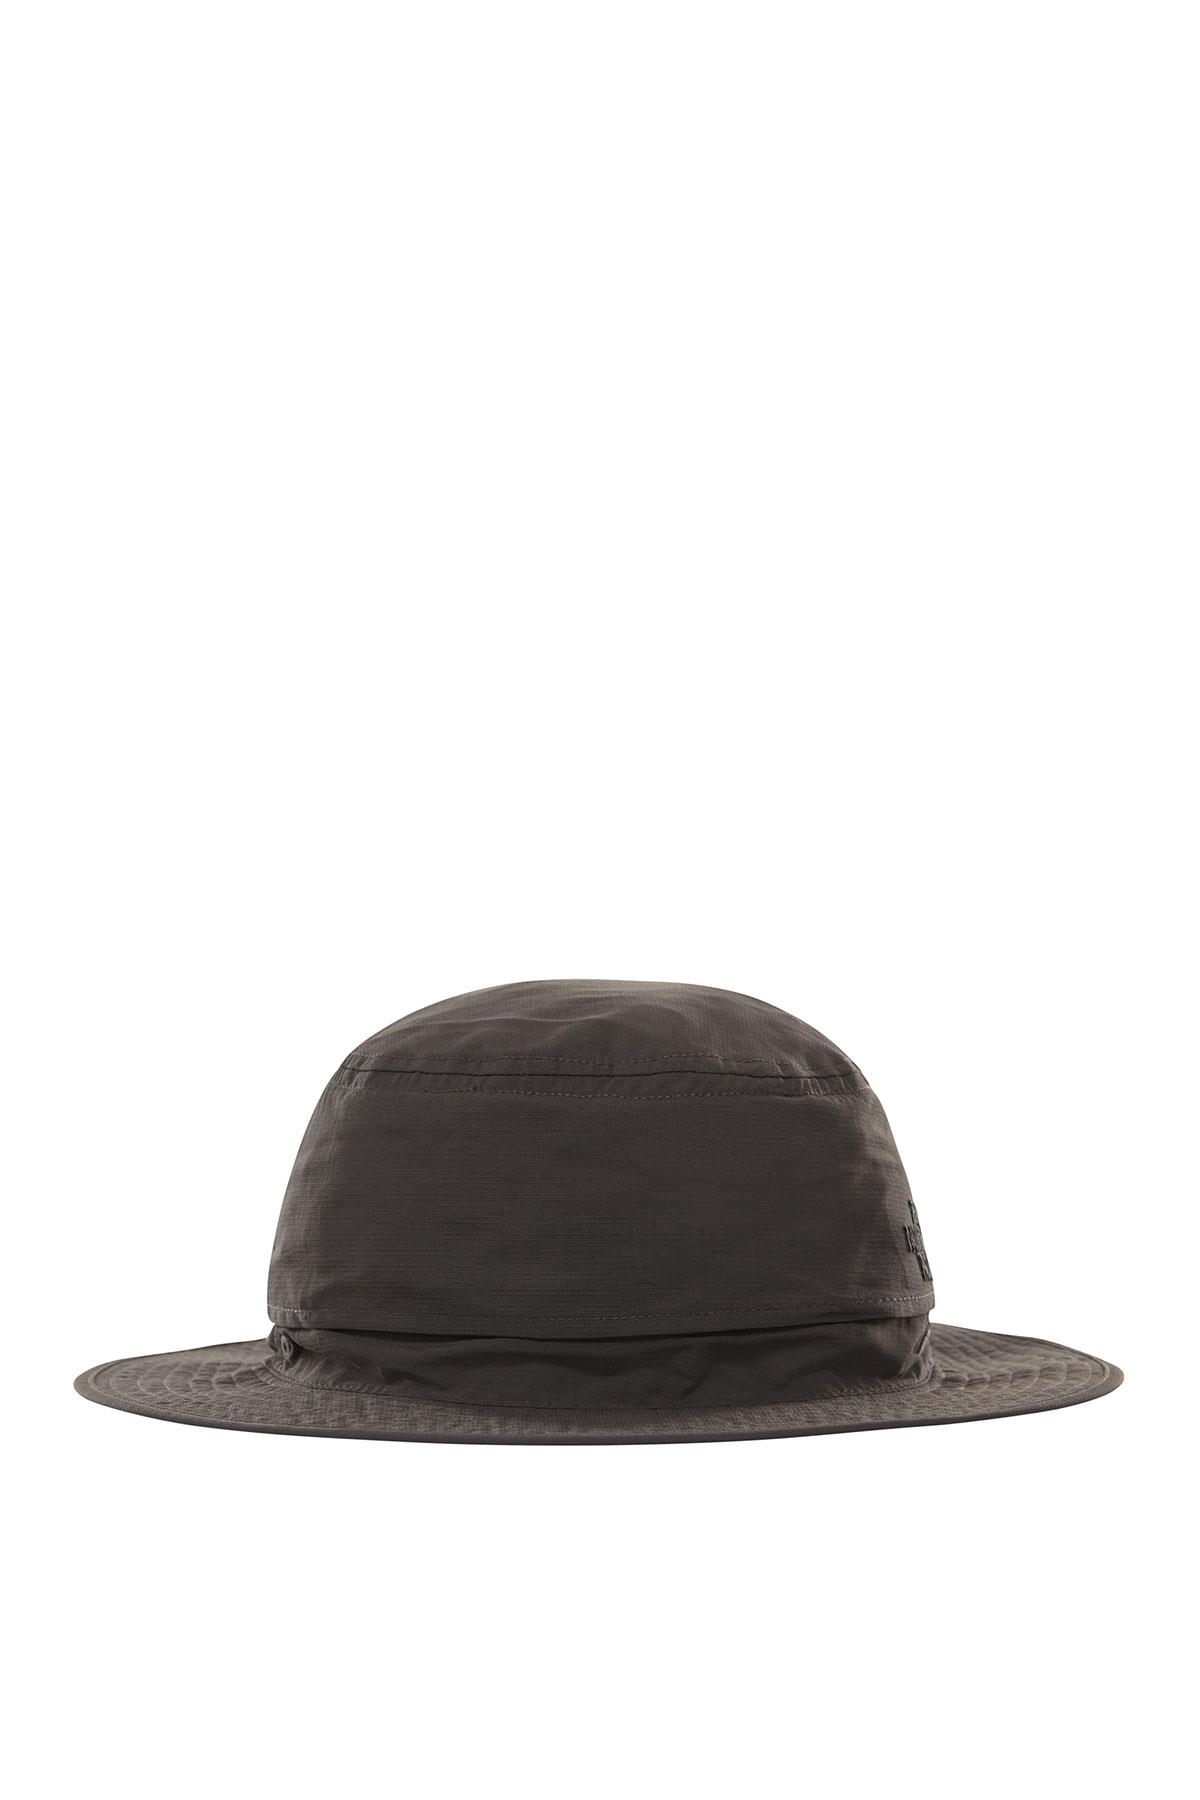 The Northface Horizon Breeze Brimmer Hat T0Cf7Tmn8